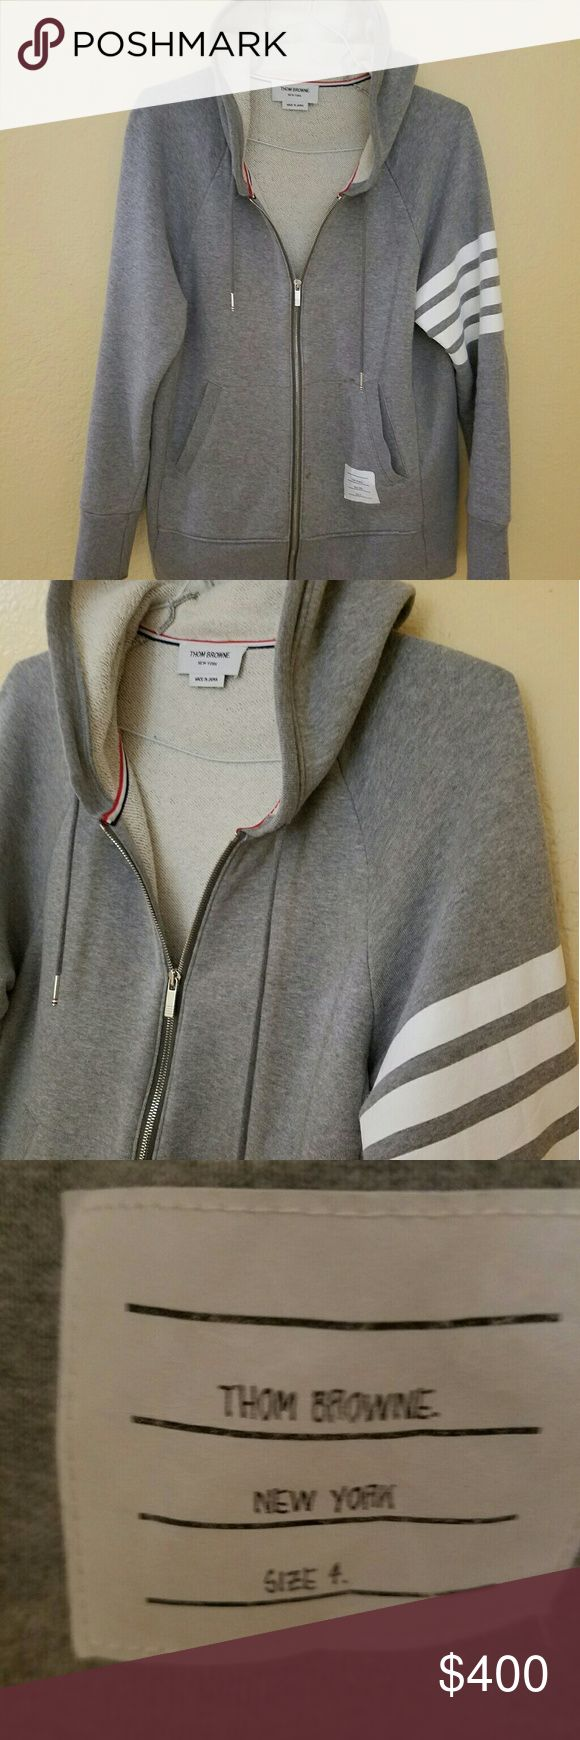 Thom browne Purchased at las vegas barneys 2016 fall Thom Browne Sweaters Zip Up